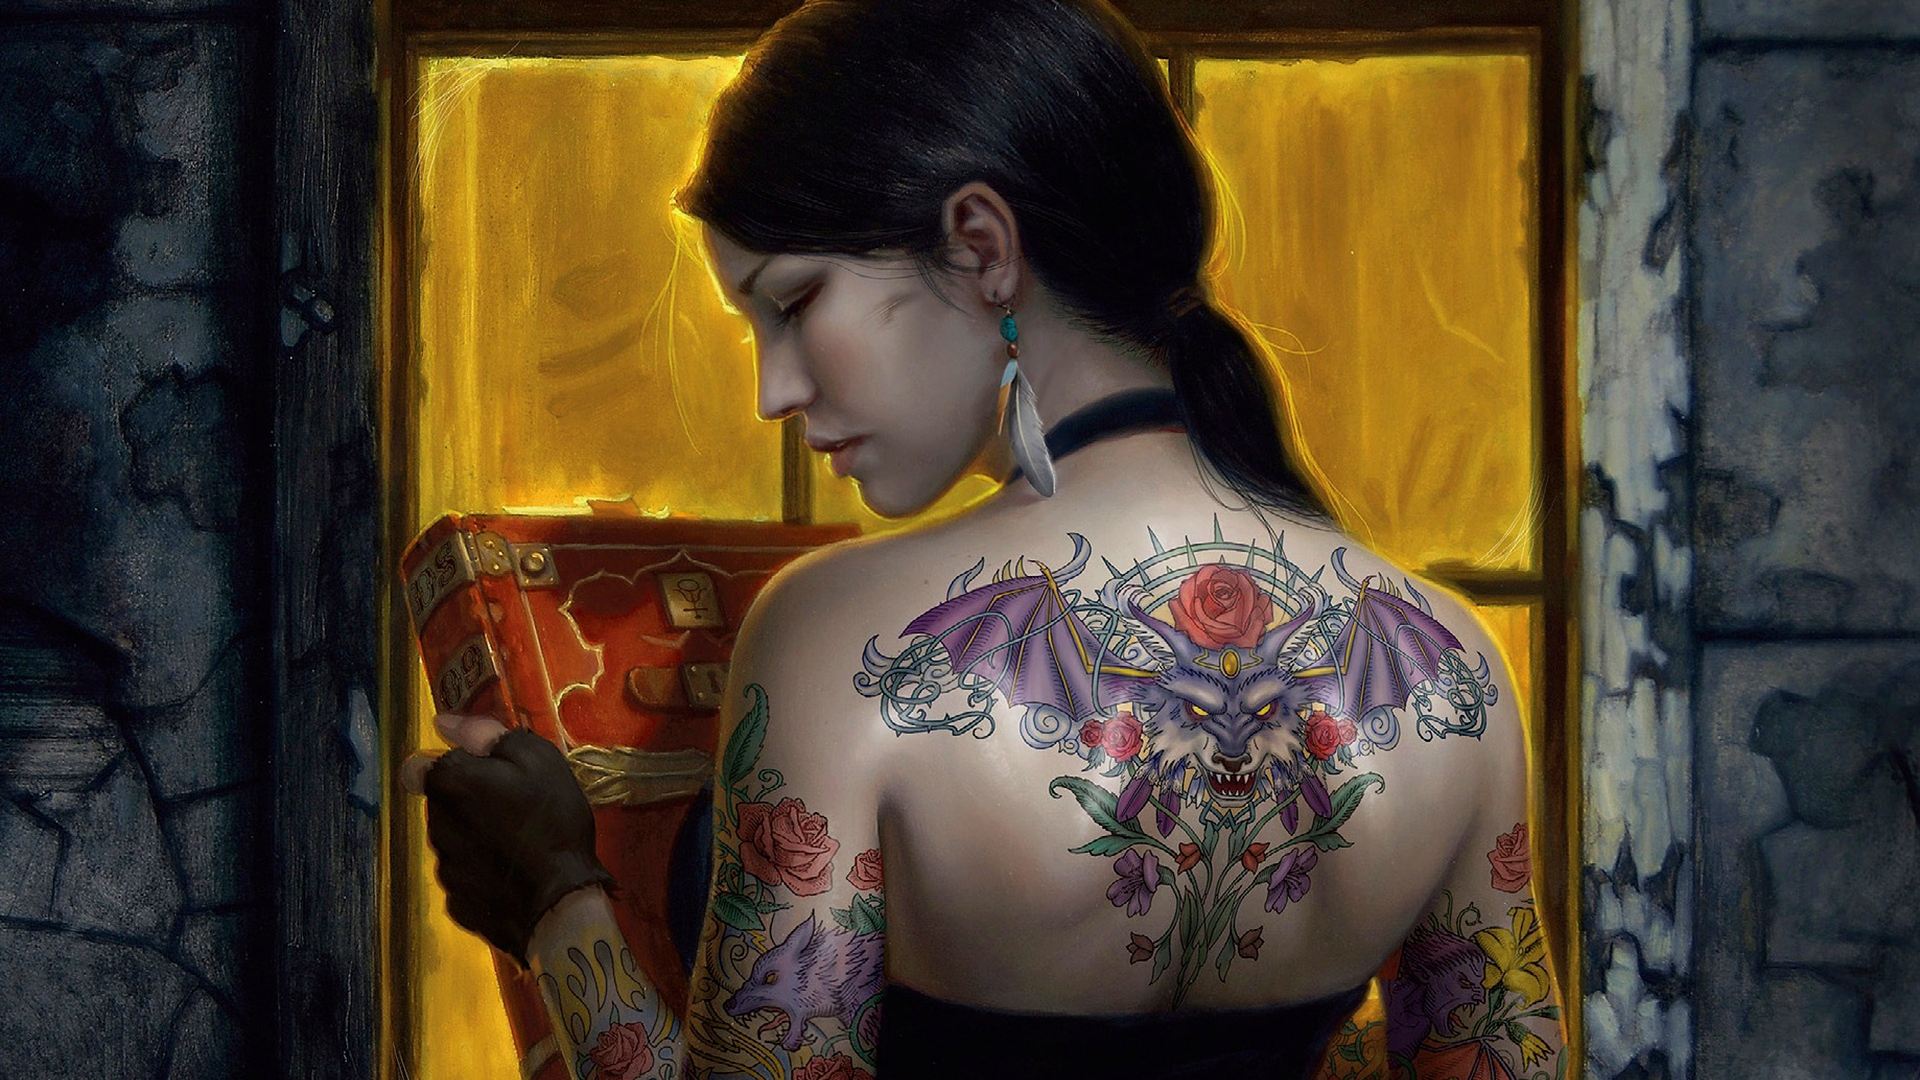 girl-tattoos-back-book-turn-1920x1080